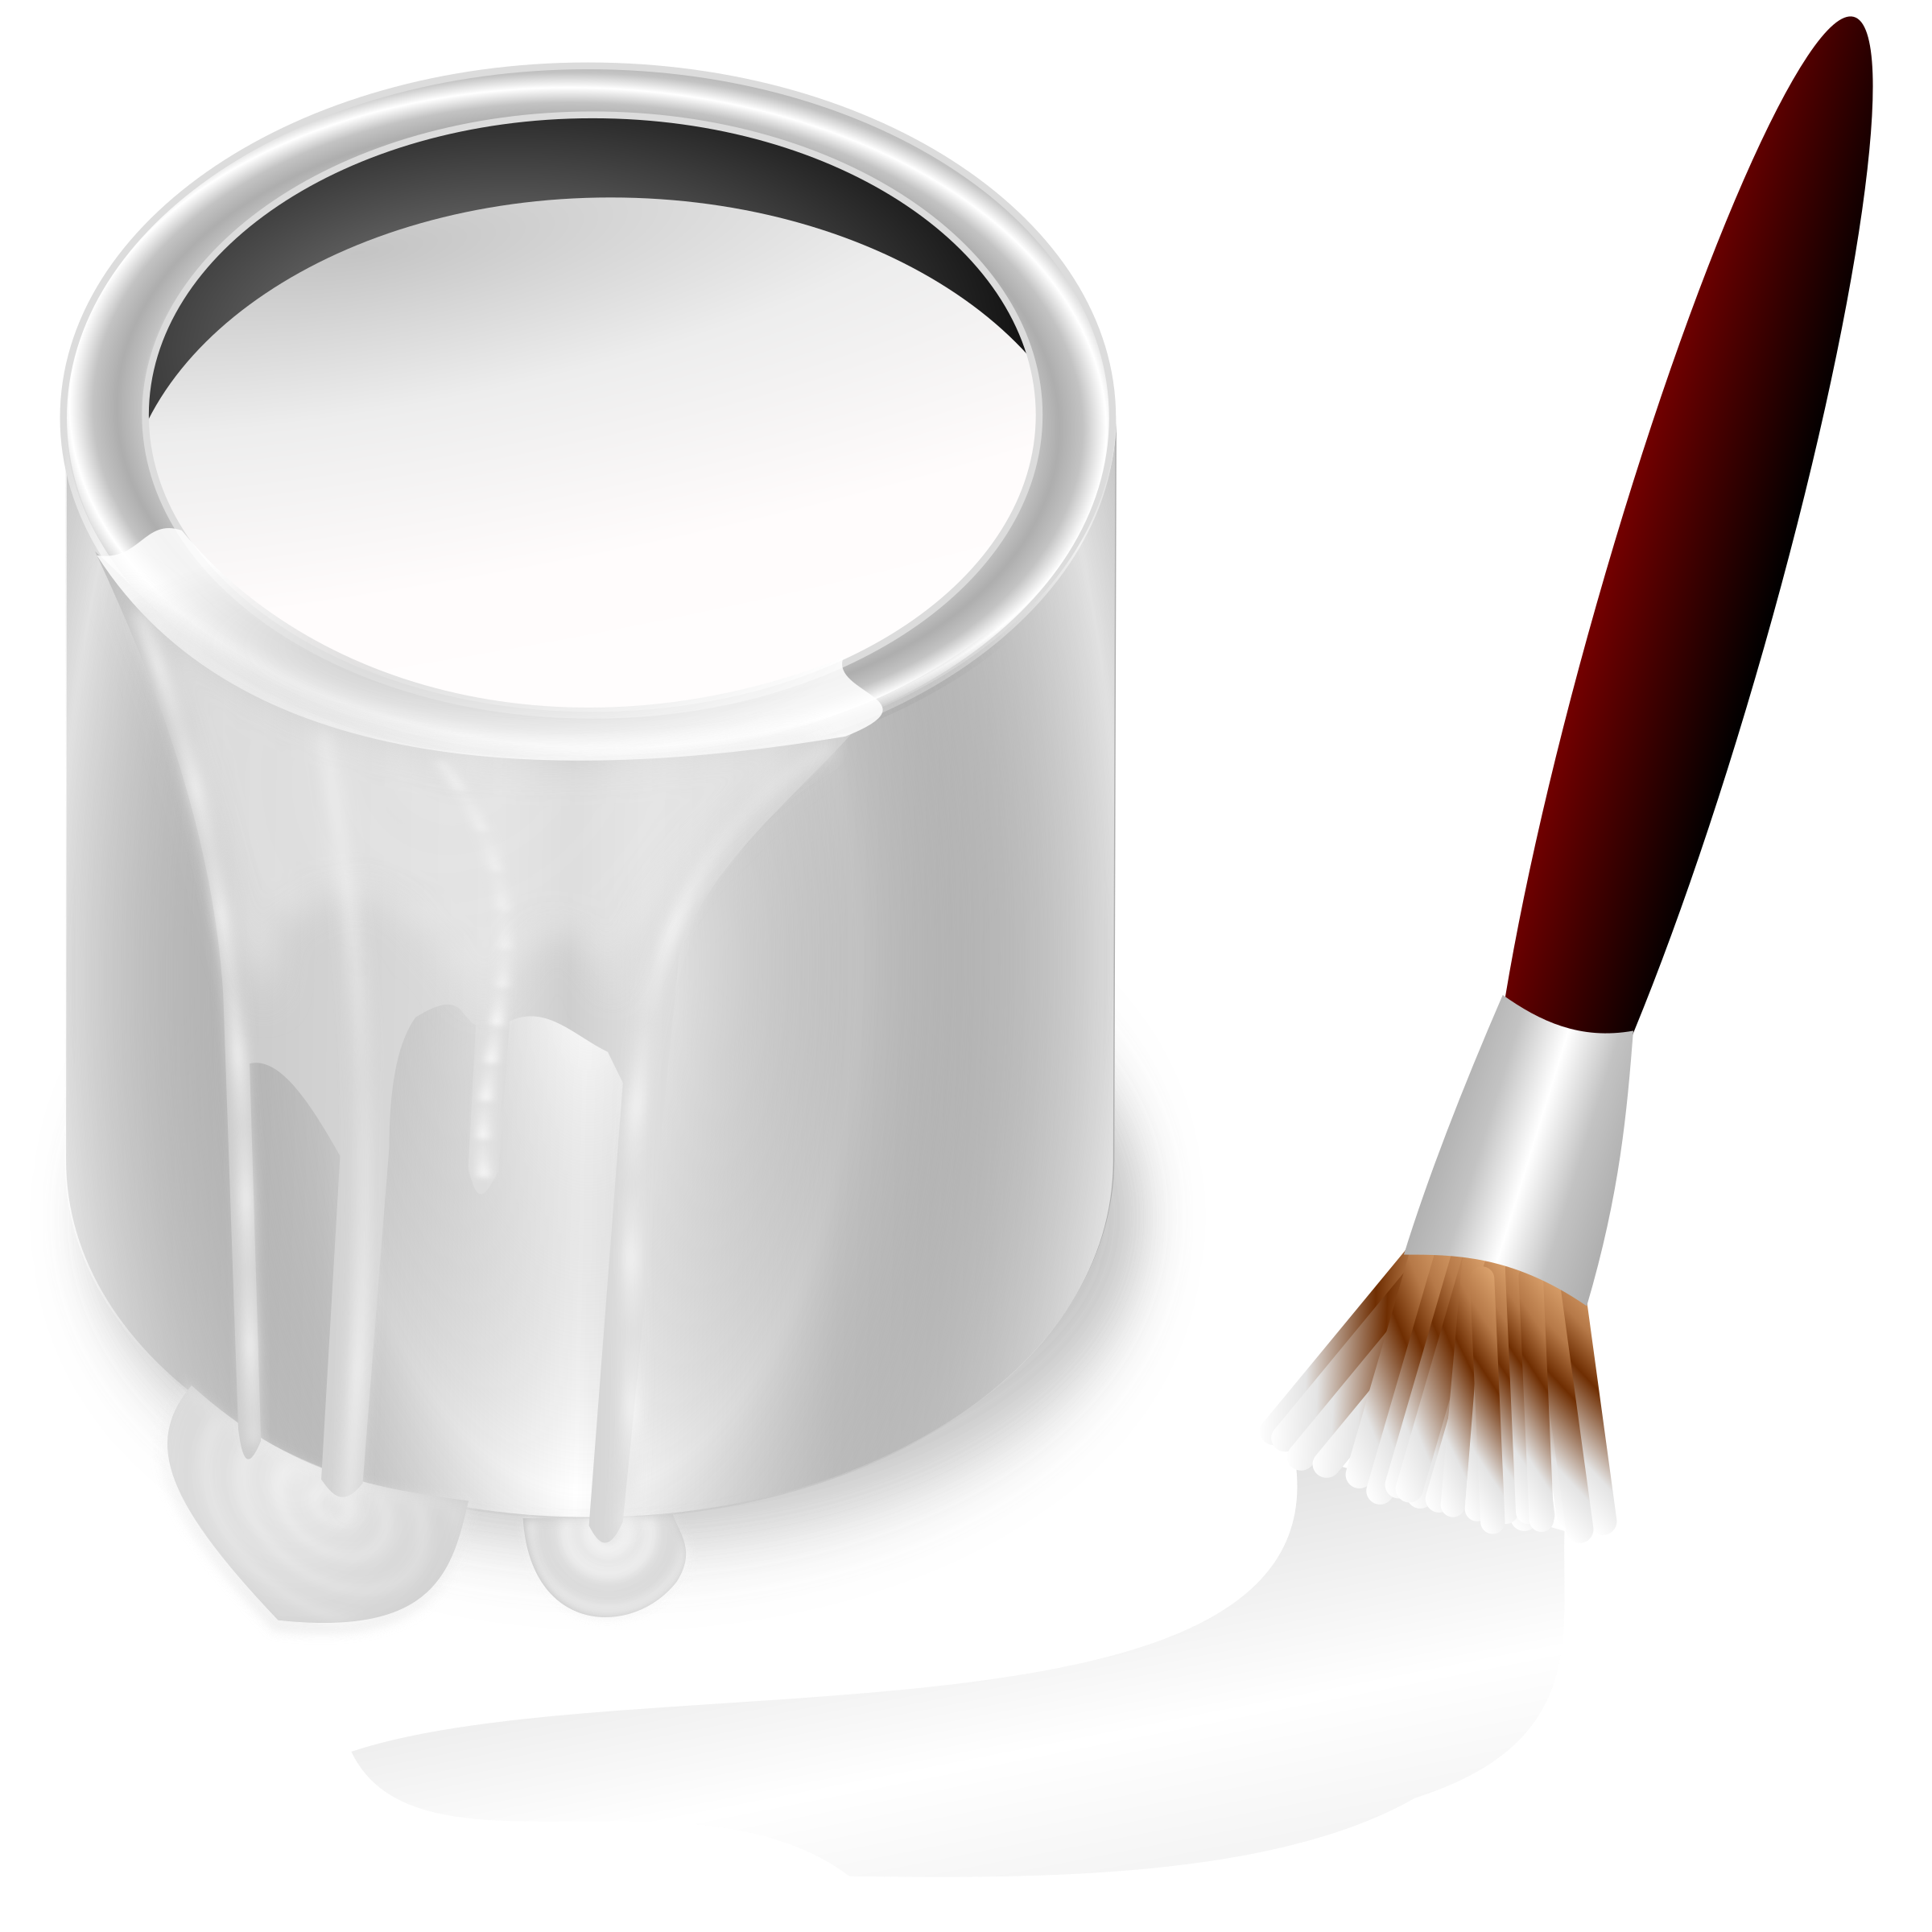 White color png. Bucket icons free and